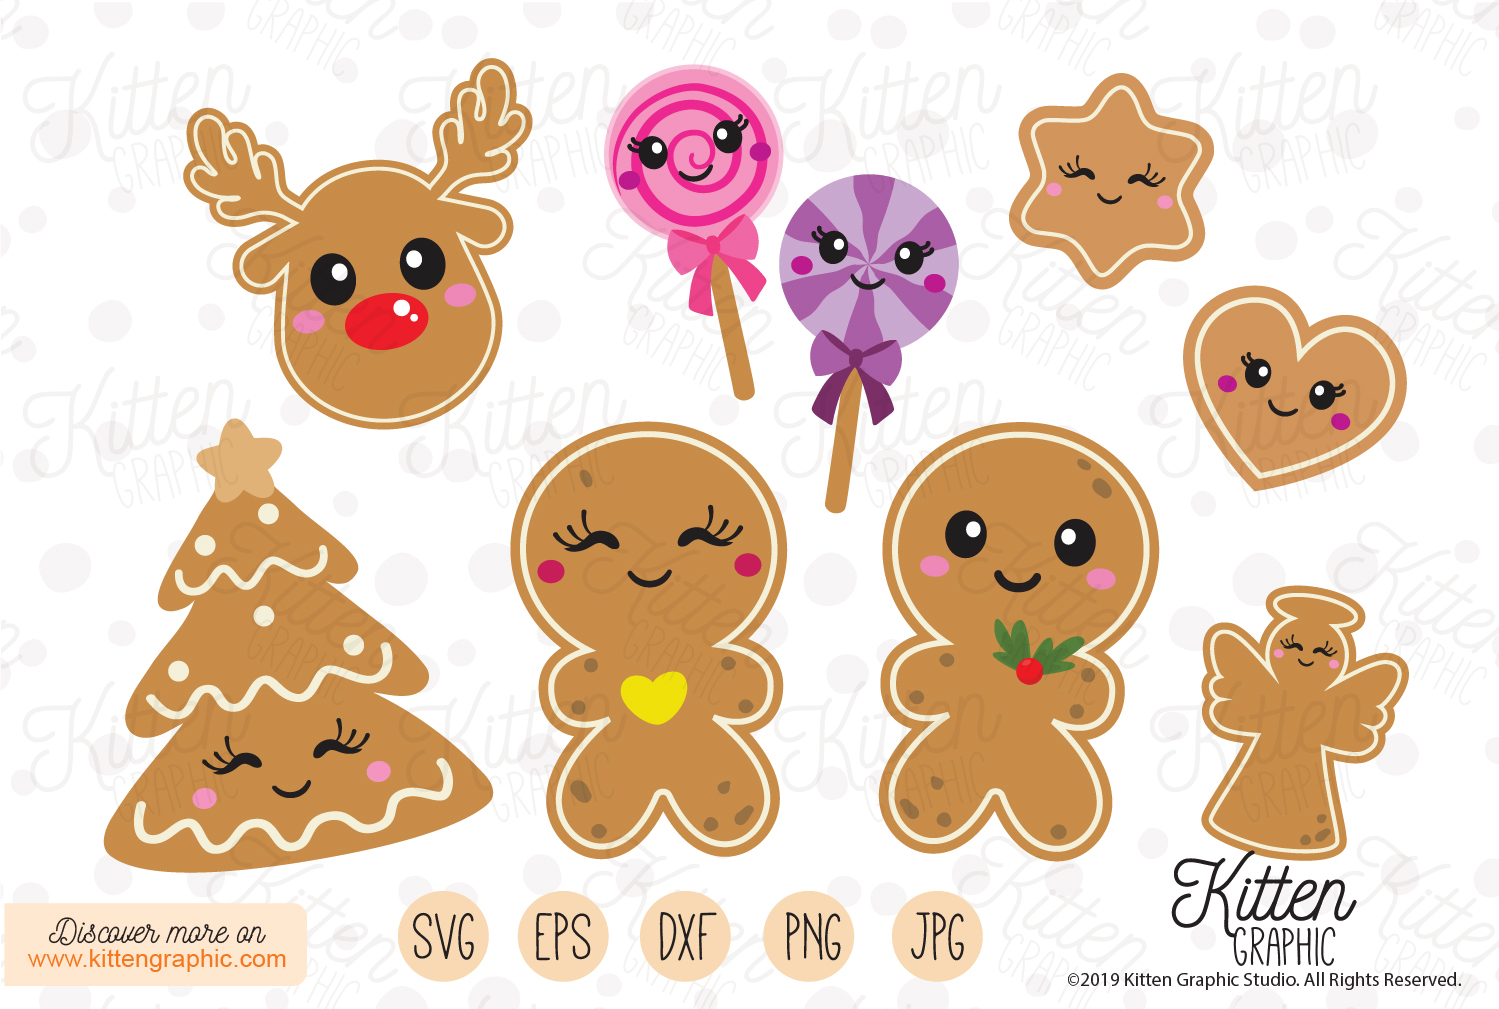 Download Free Gingerbread Christmas Set Graphic By Kittengraphicstudio for Cricut Explore, Silhouette and other cutting machines.